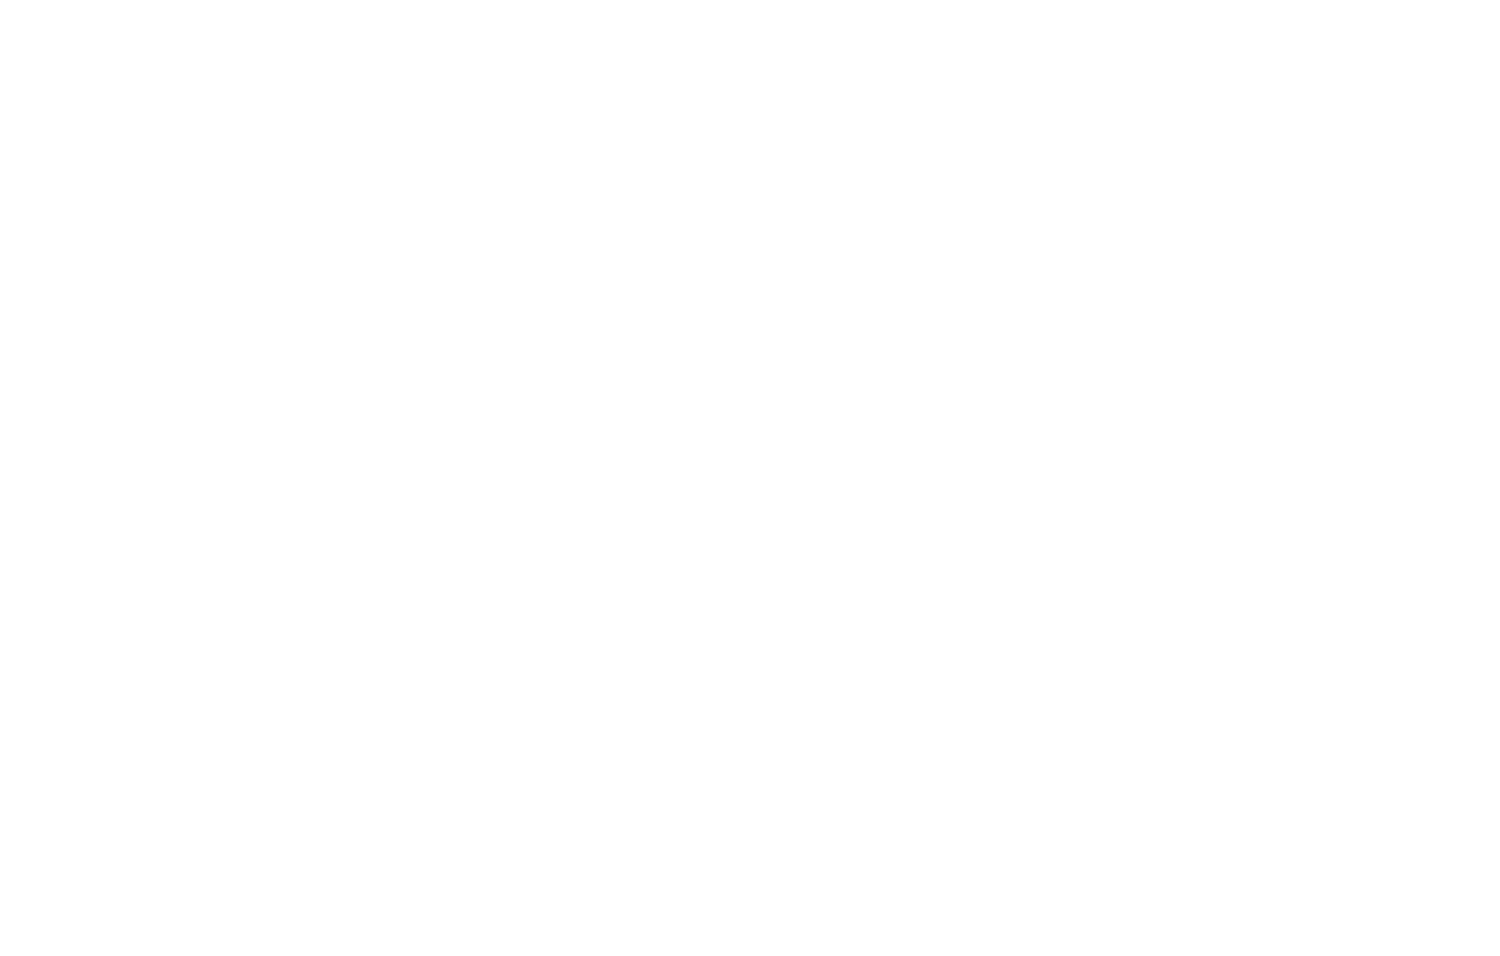 Fort Worth Doula Associates